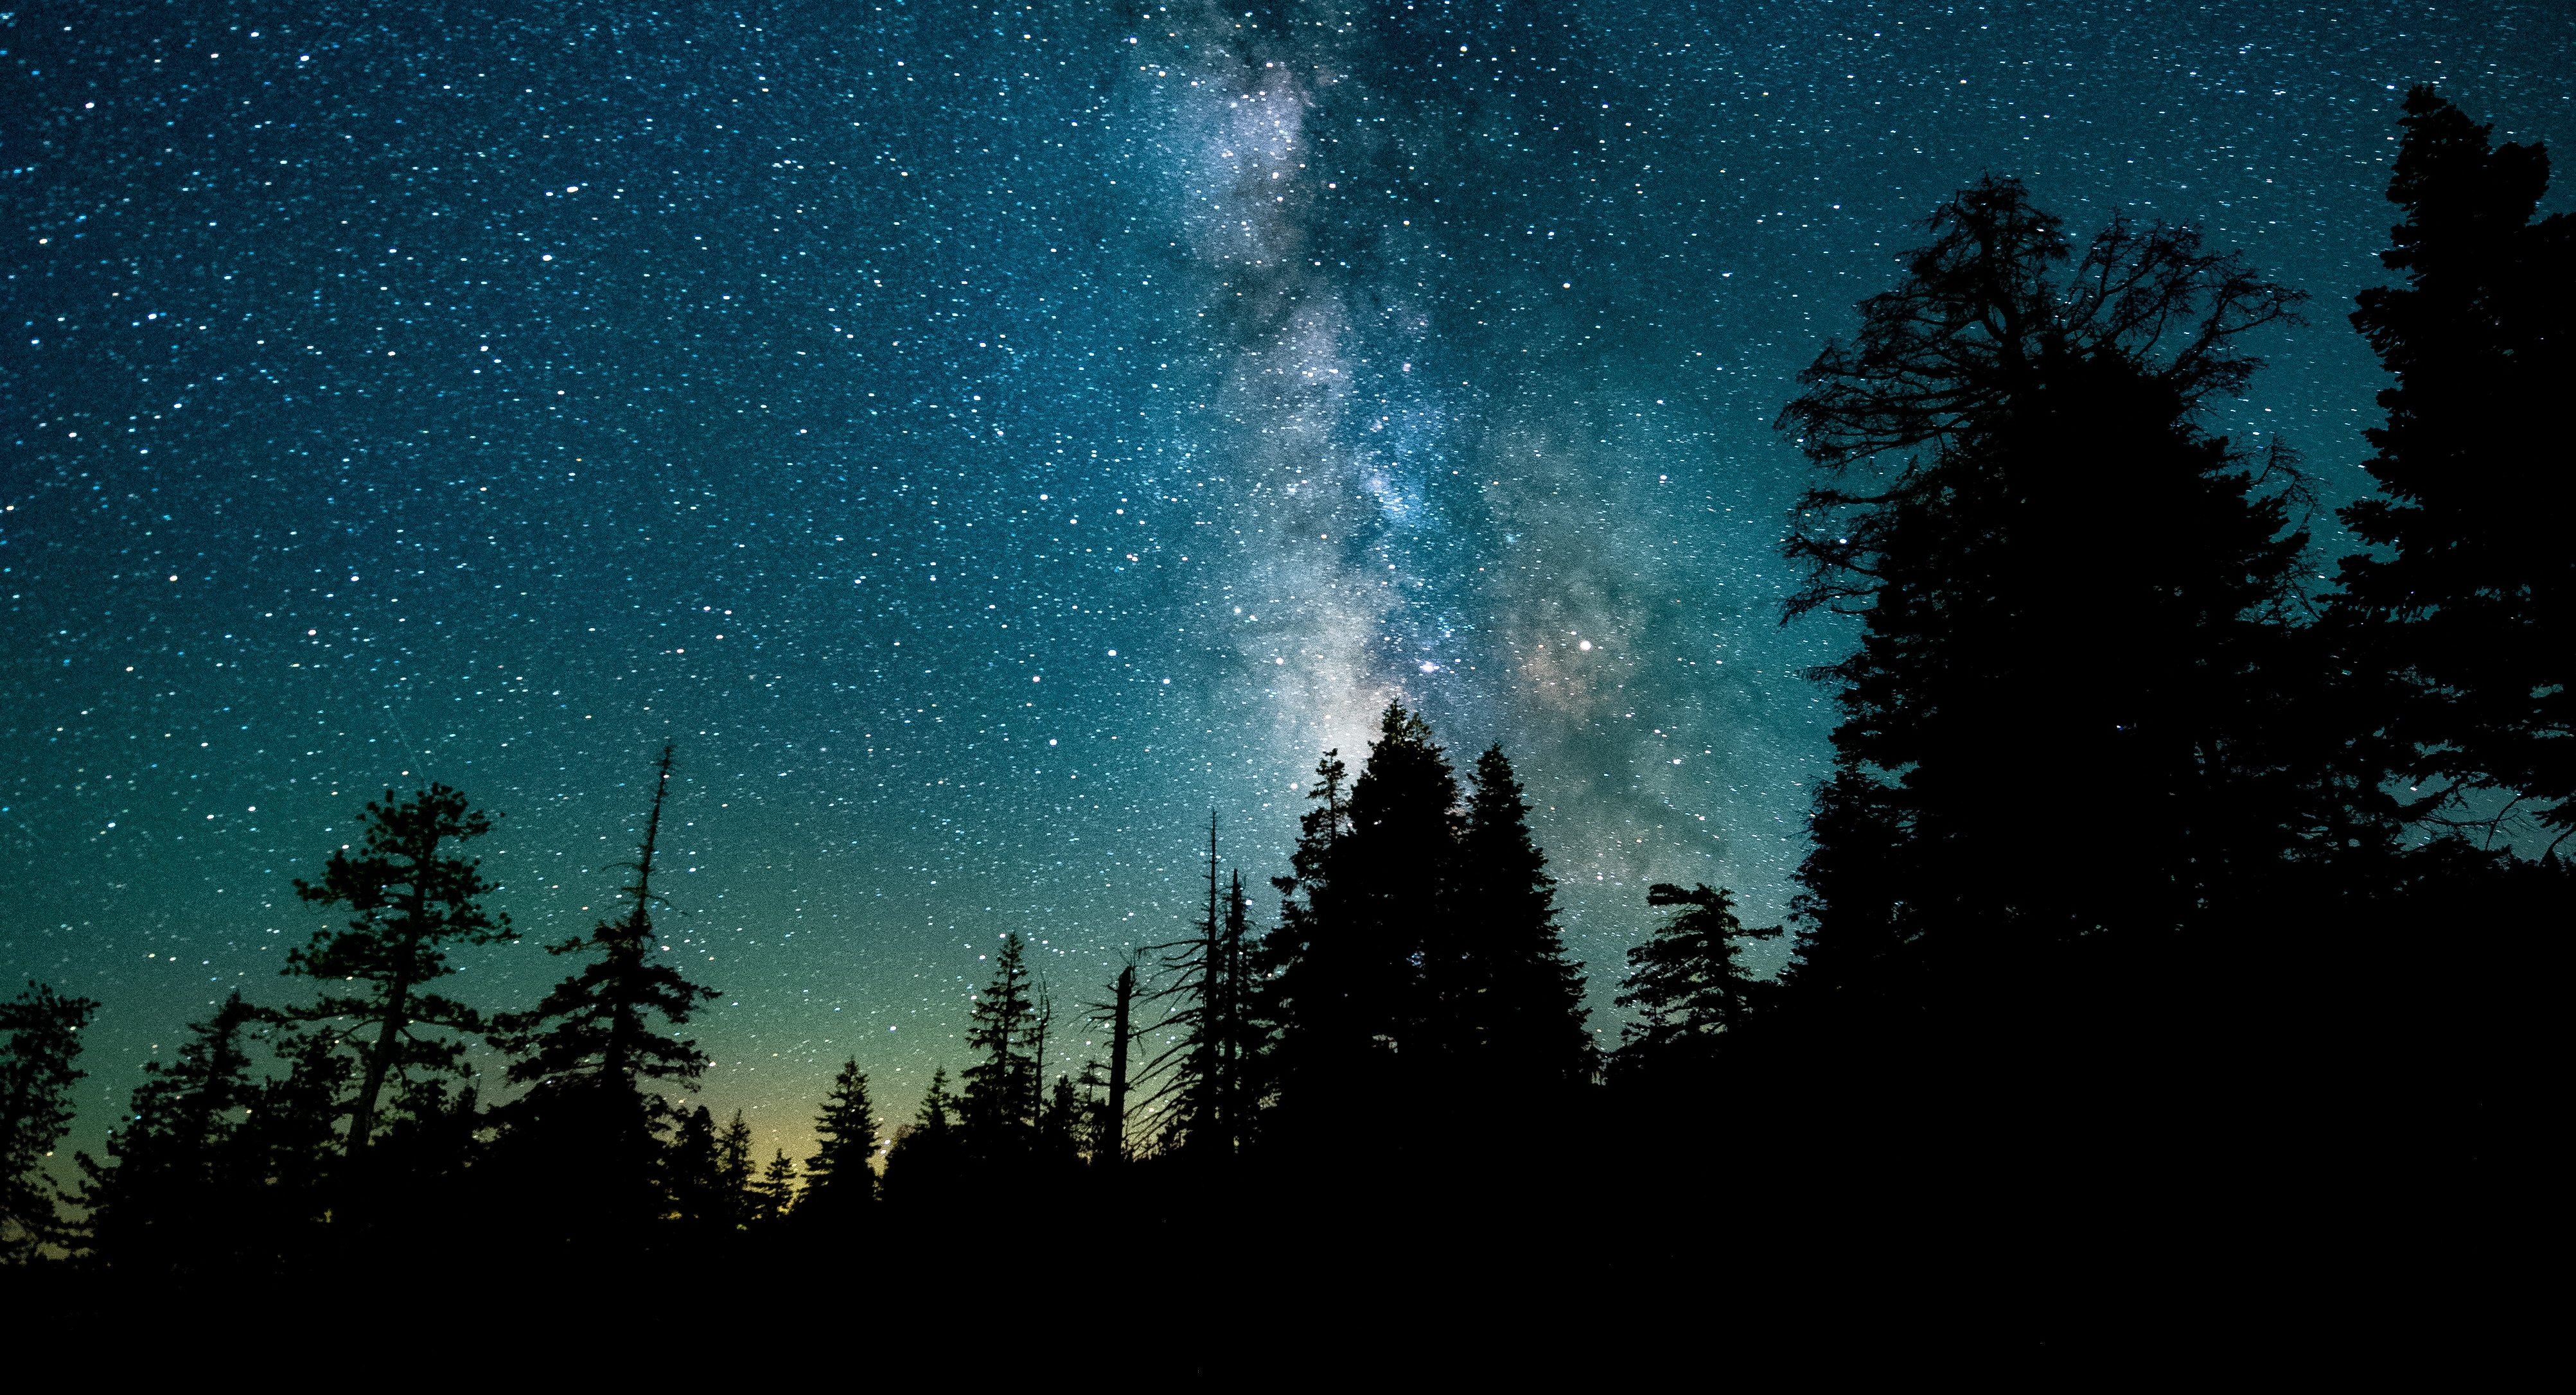 A dark treeline and the milky way visible in the sky, at night.